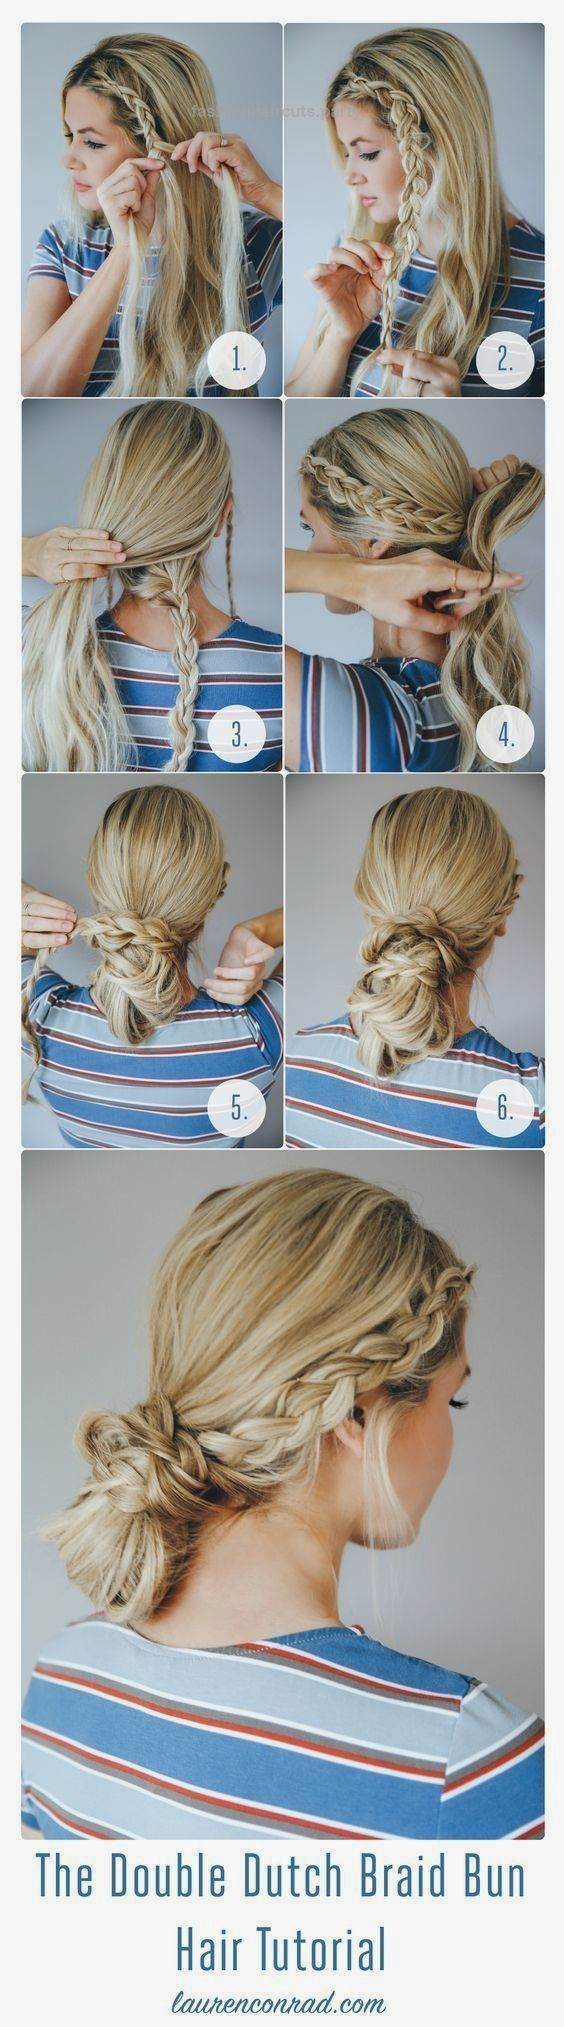 easy braided hairstyles for long hair – Tap the pin if you love super heroes too…  easy braided hairstyles for long hair – Tap the pin if you love super heroes too! Cause guess what? you will LOVE these super hero fitness shirts!